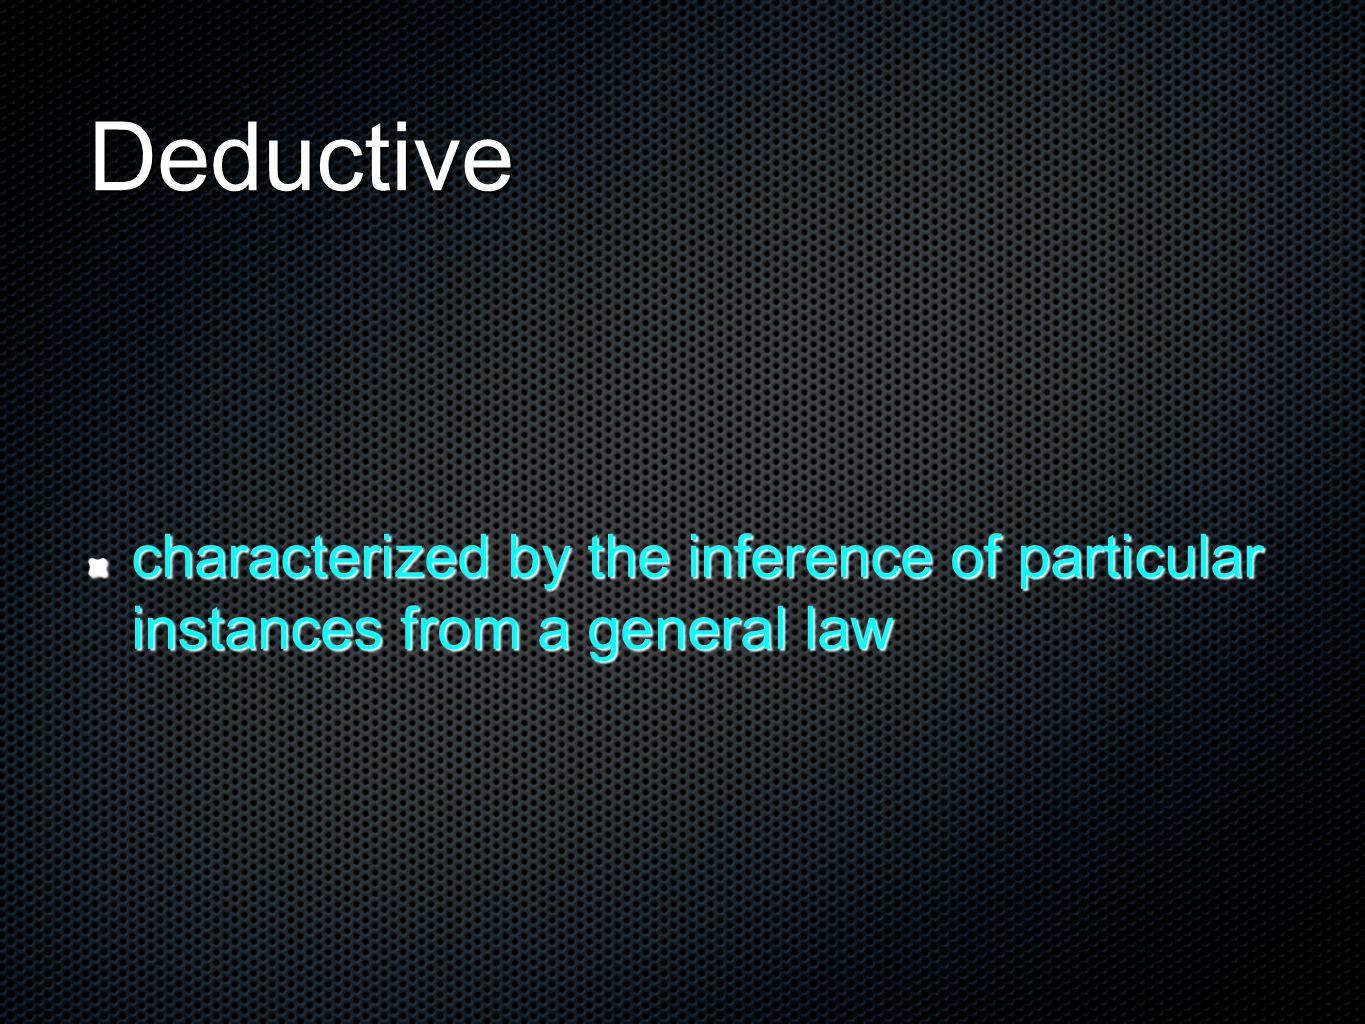 Deductive characterized by the inference of particular instances from a general law